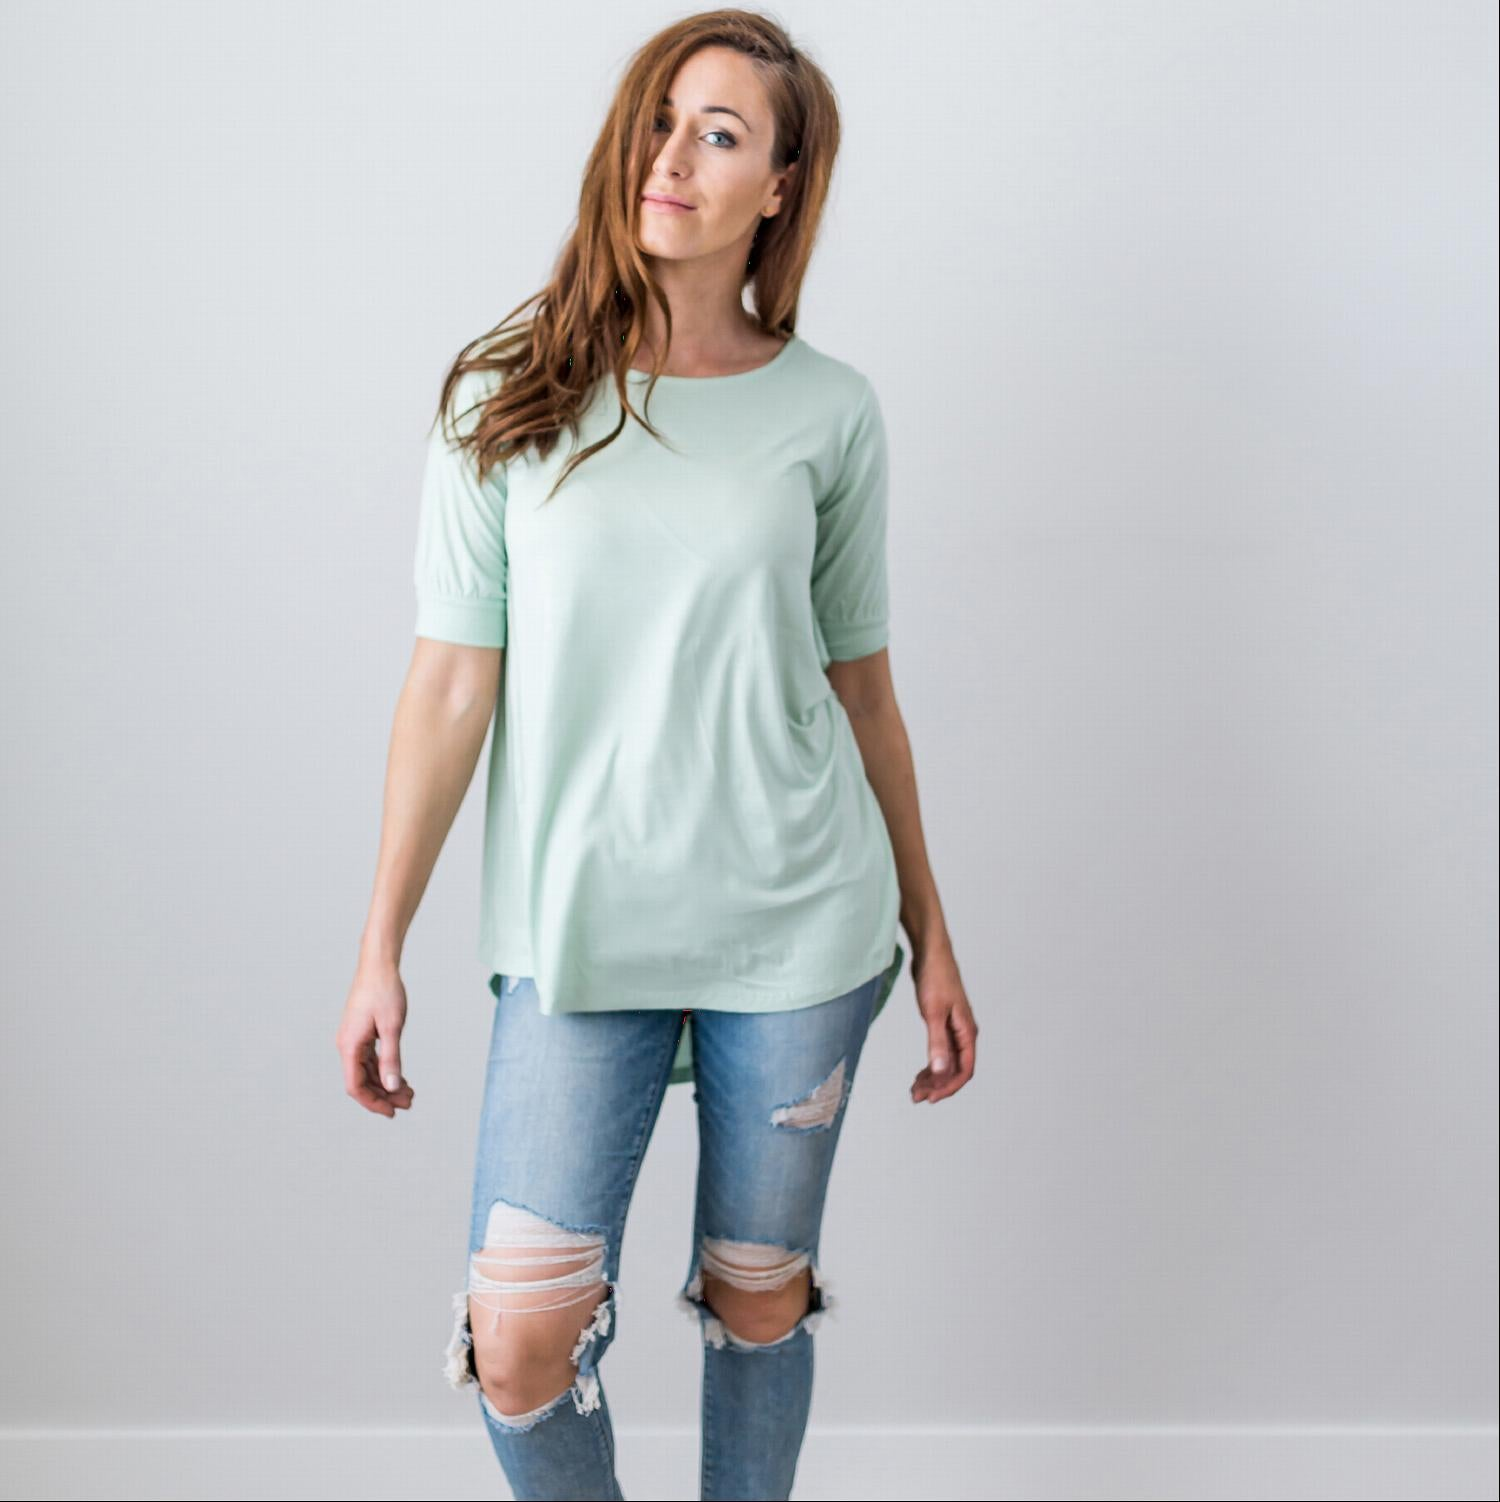 Sage Summer Sale Women's Sexy Back Criss Cross Short Sleeve Blouse Top Sage S-L USA